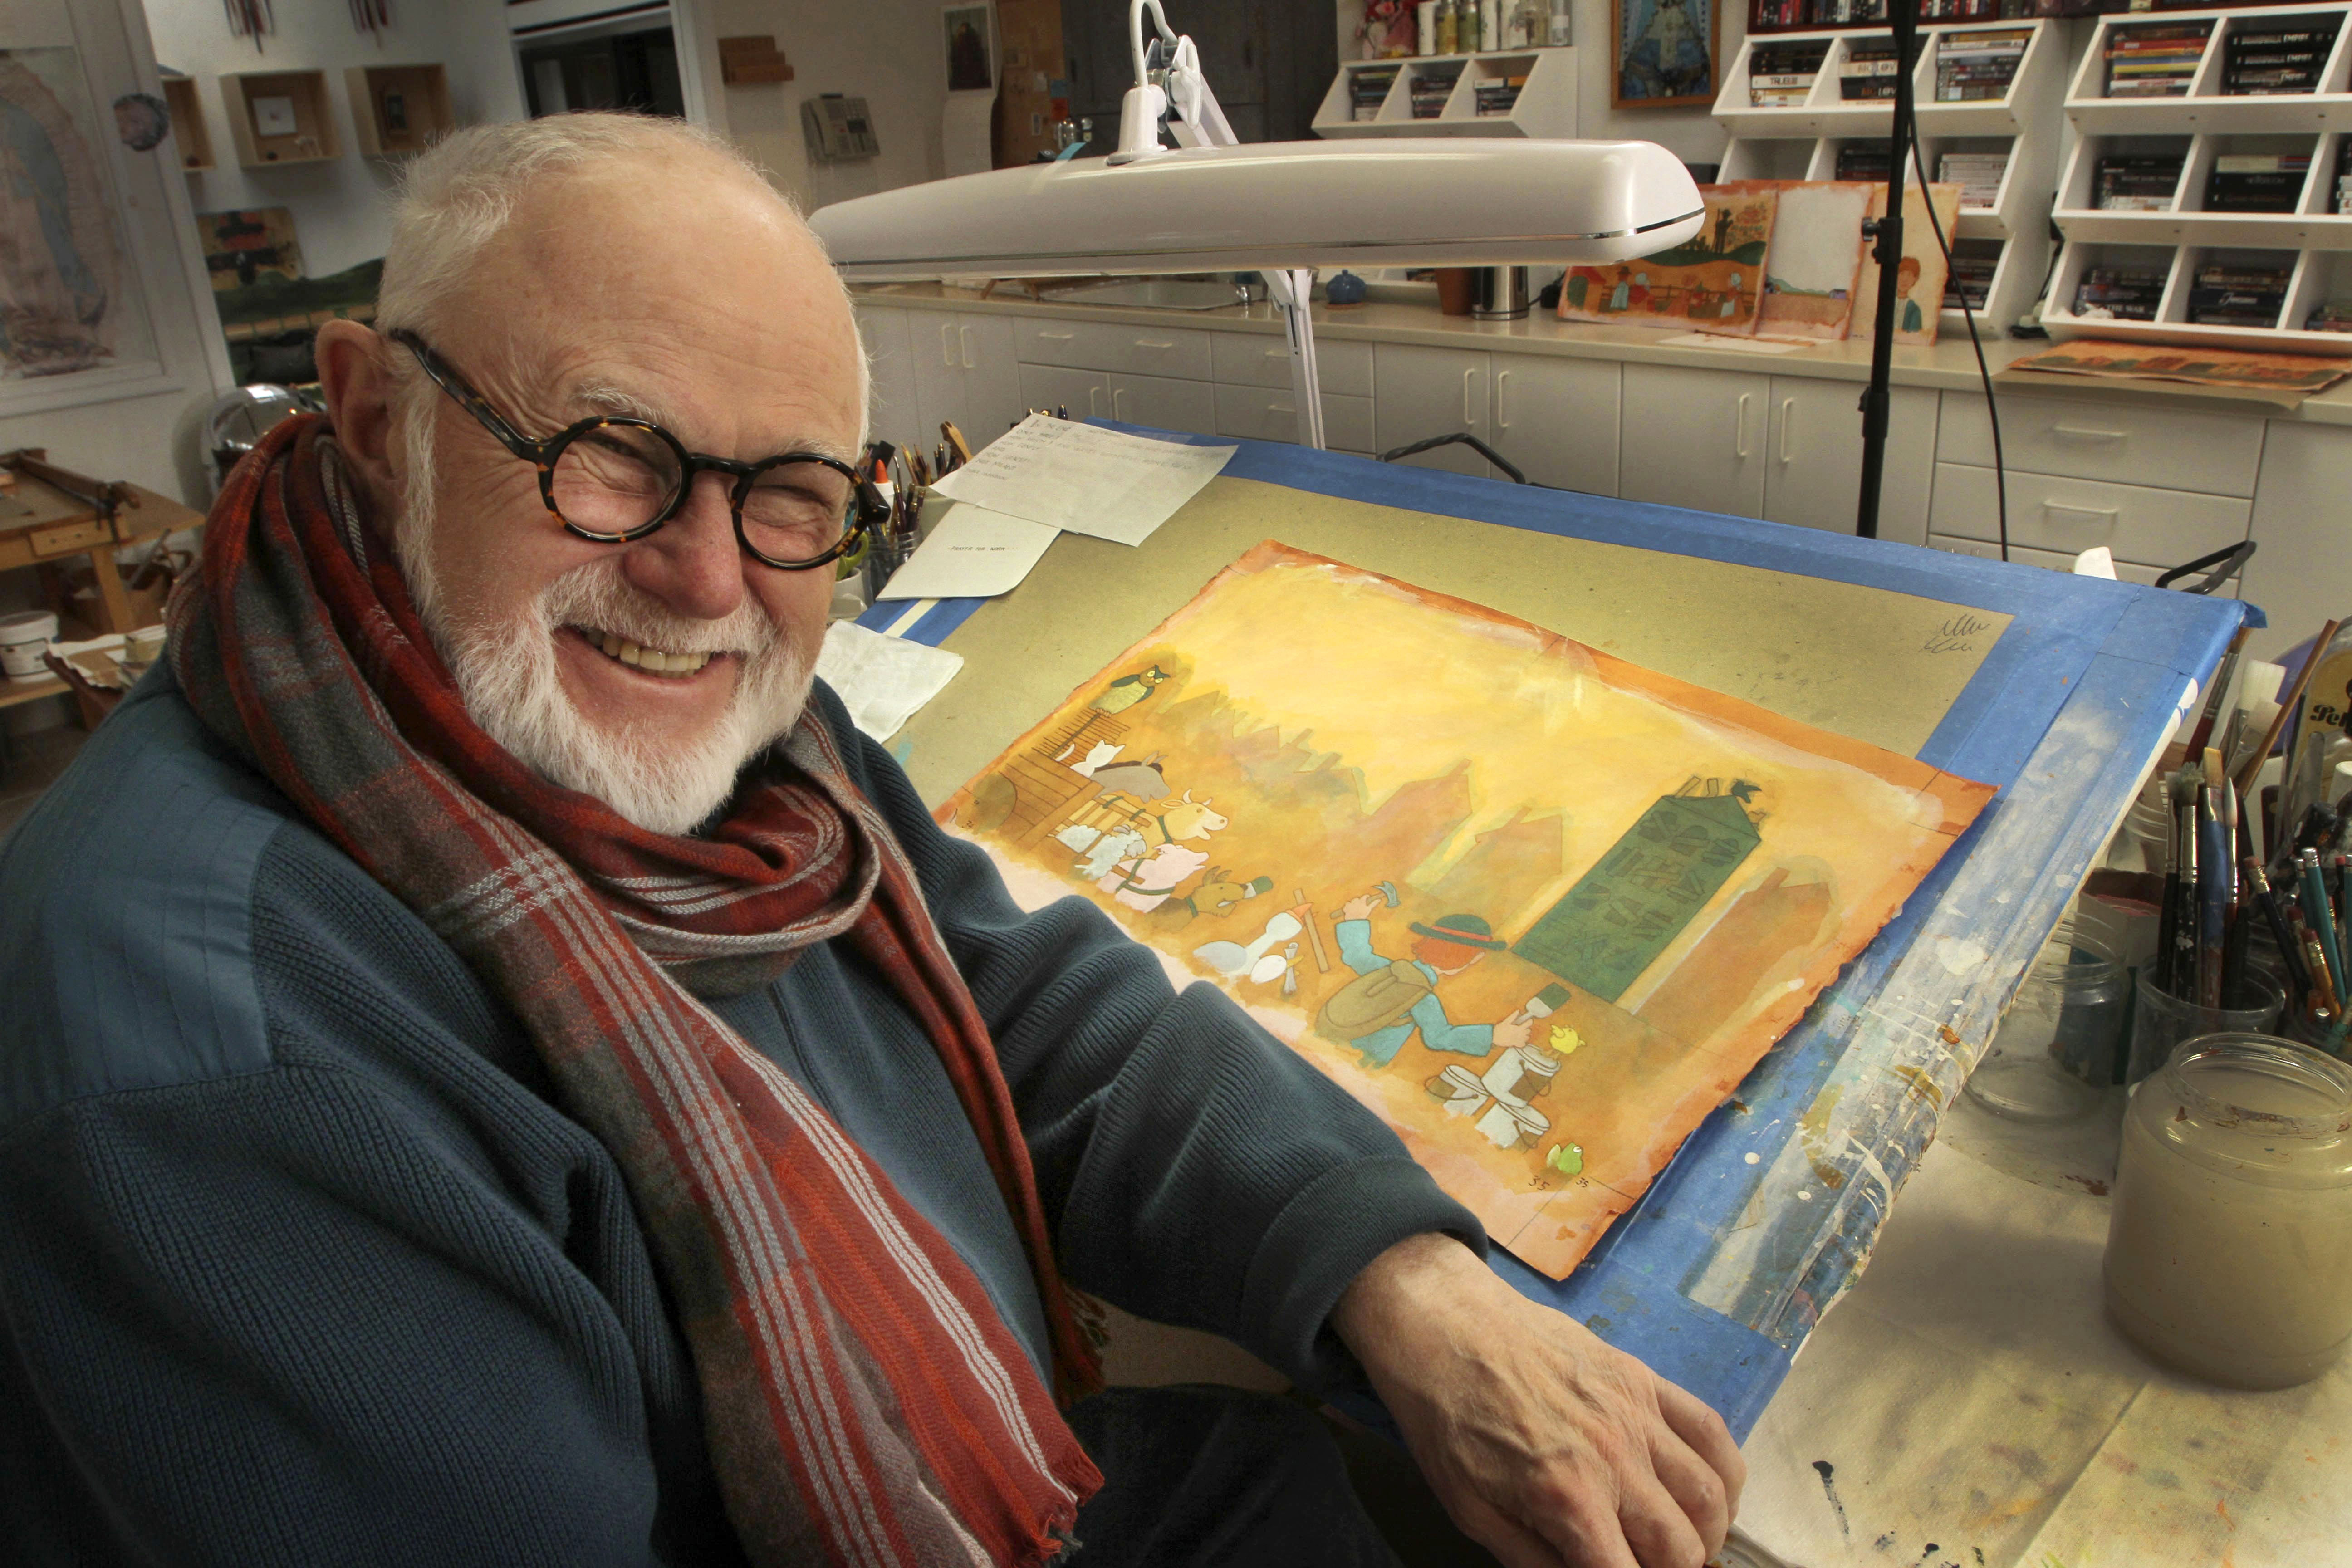 Tomie dePaola poses with his artwork in his studio in New London, N.H., on Dec. 1, 2013.